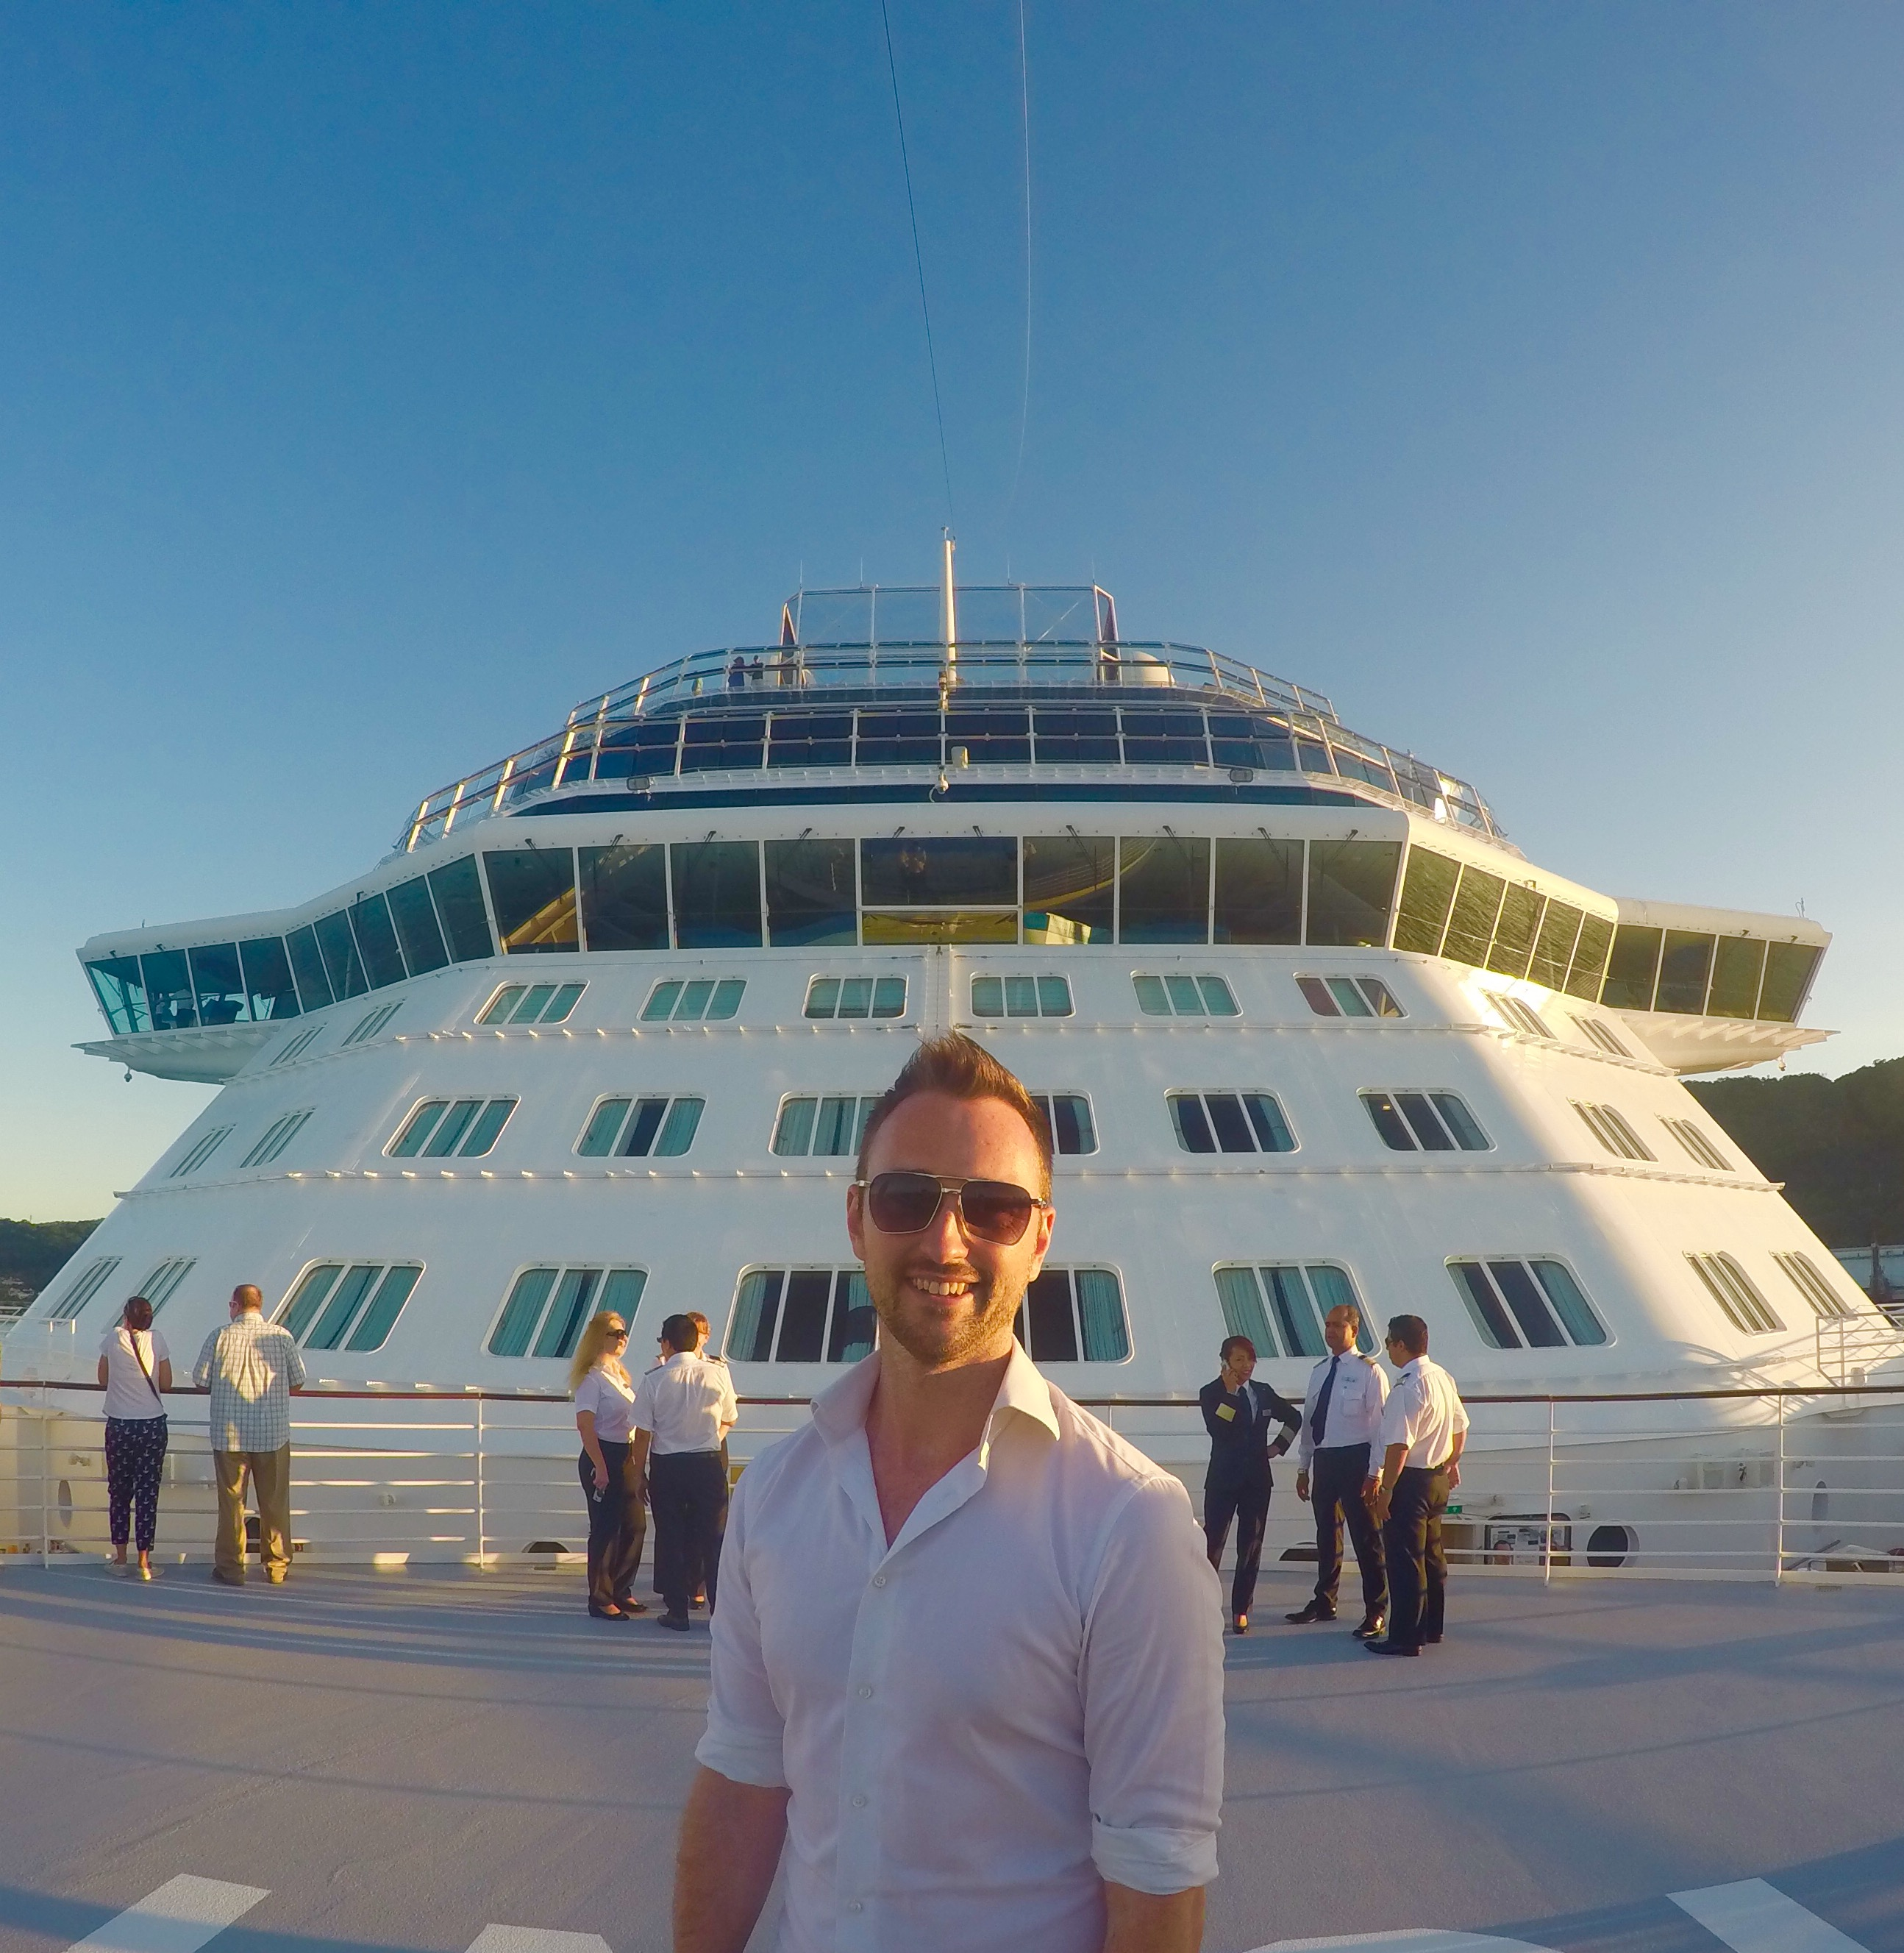 Marcus Adams of Sparkx.org on the rise of LGBT cruises